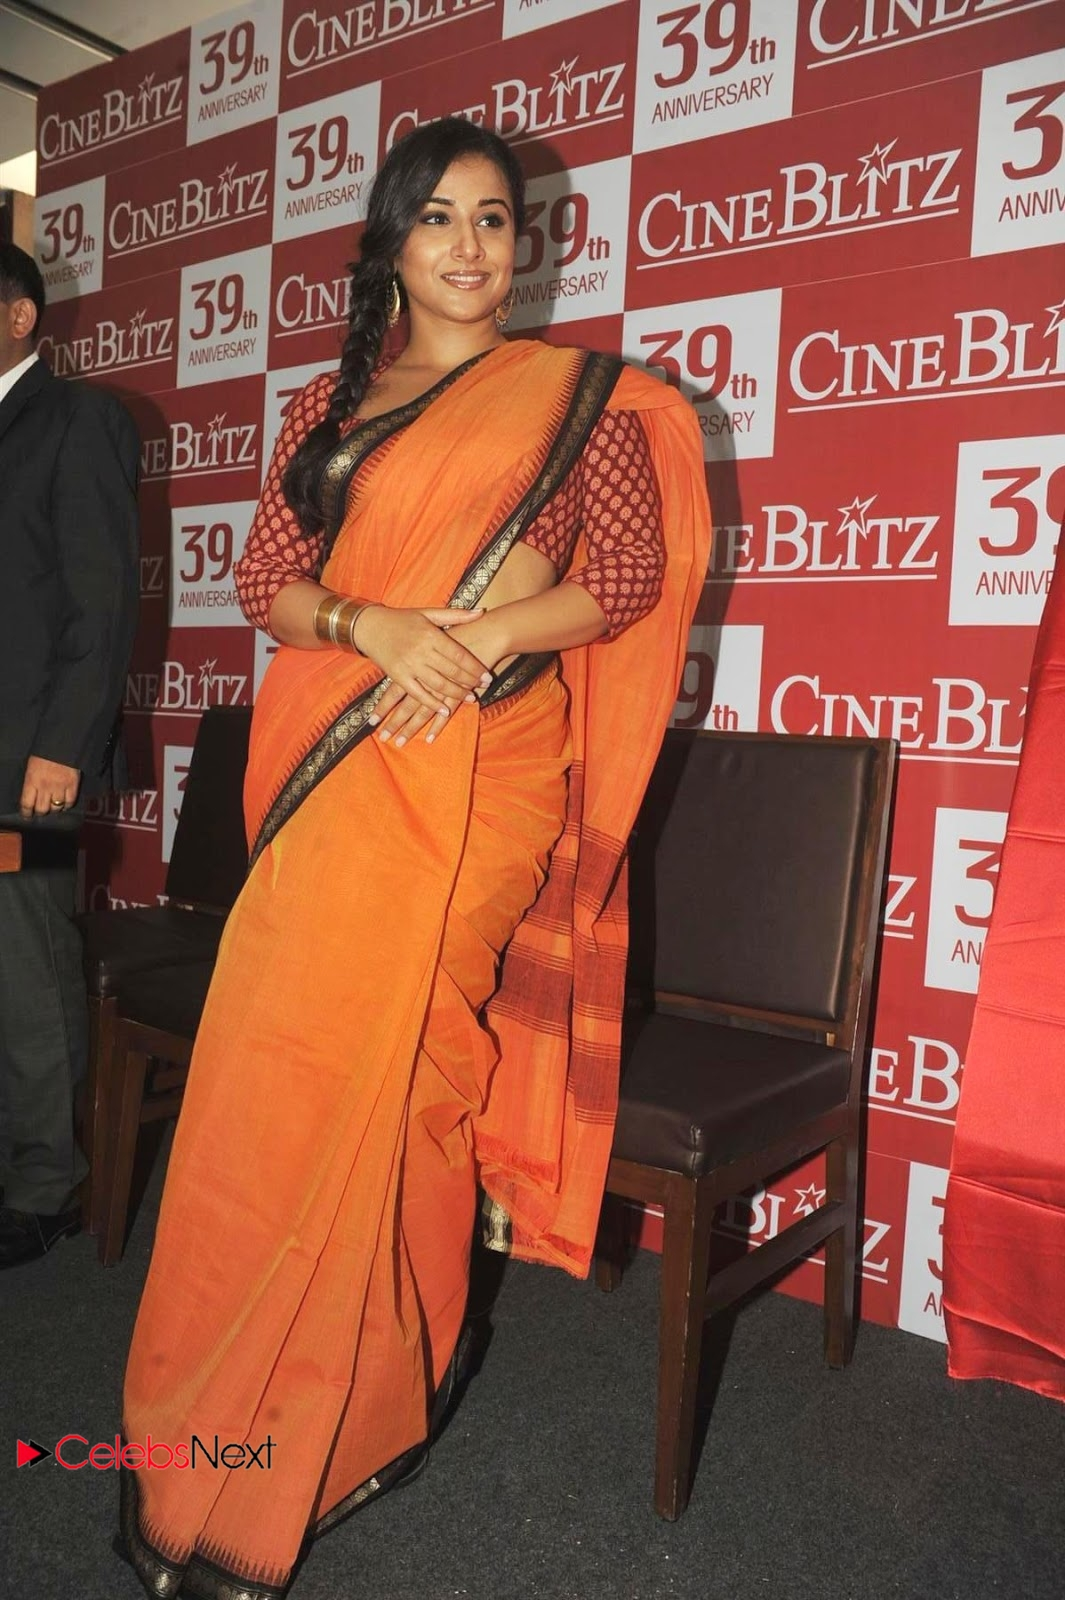 http://1.bp.blogspot.com/-RKuSlM-Gjhc/UWKVK1aL9kI/AAAAAAAAYD4/fB3EUDNNbxw/s1600/Vidya+Balan+Psuperos+in+Saree+at+39th+Anniversary+Issue+of+Cine+Blitz+Magazine+April+2013+CelebsNext+0004.jpg